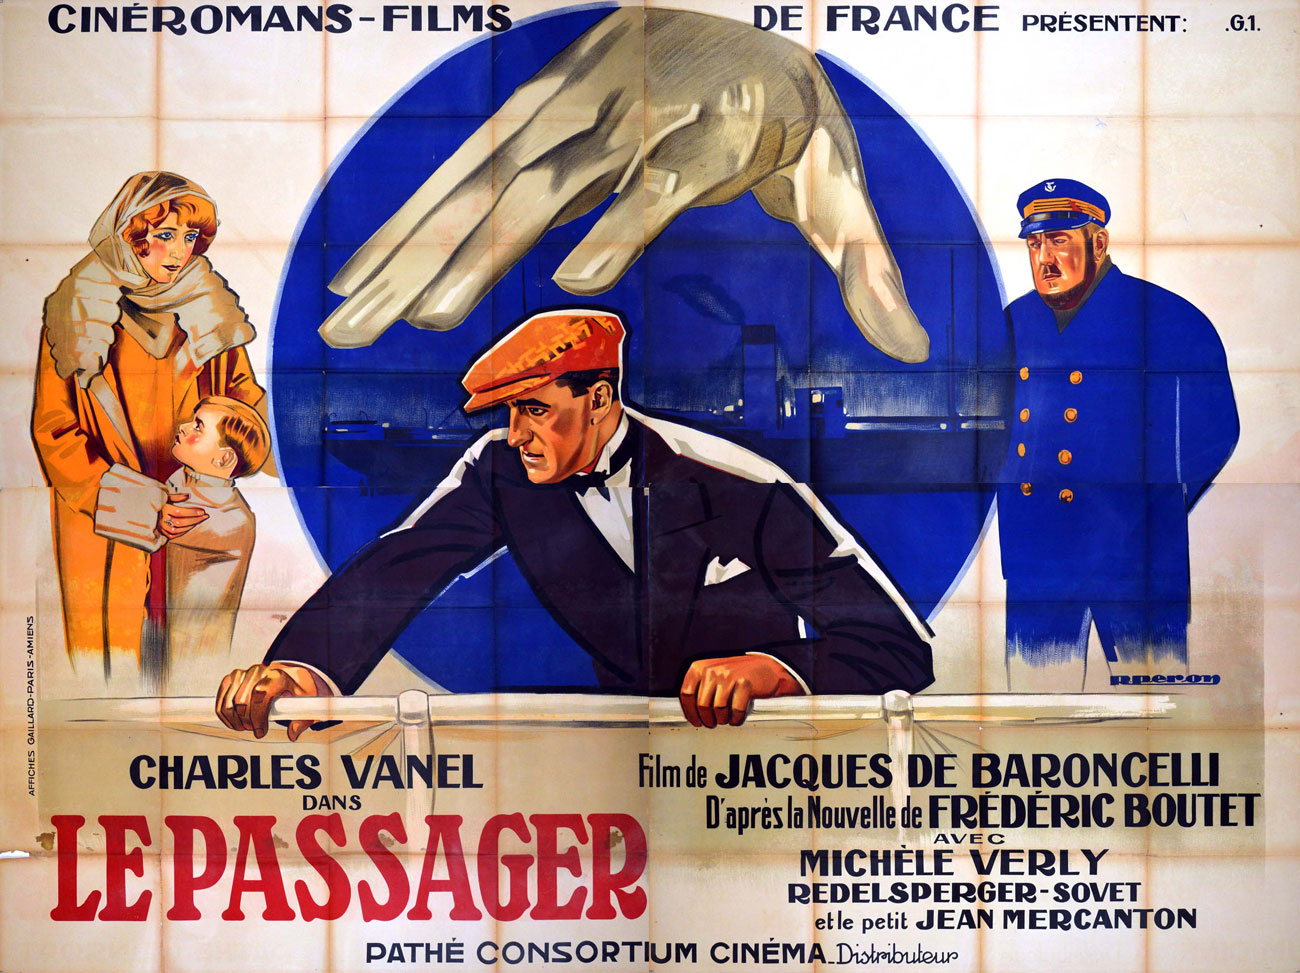 Passager (le) by Jacques De Baroncelli